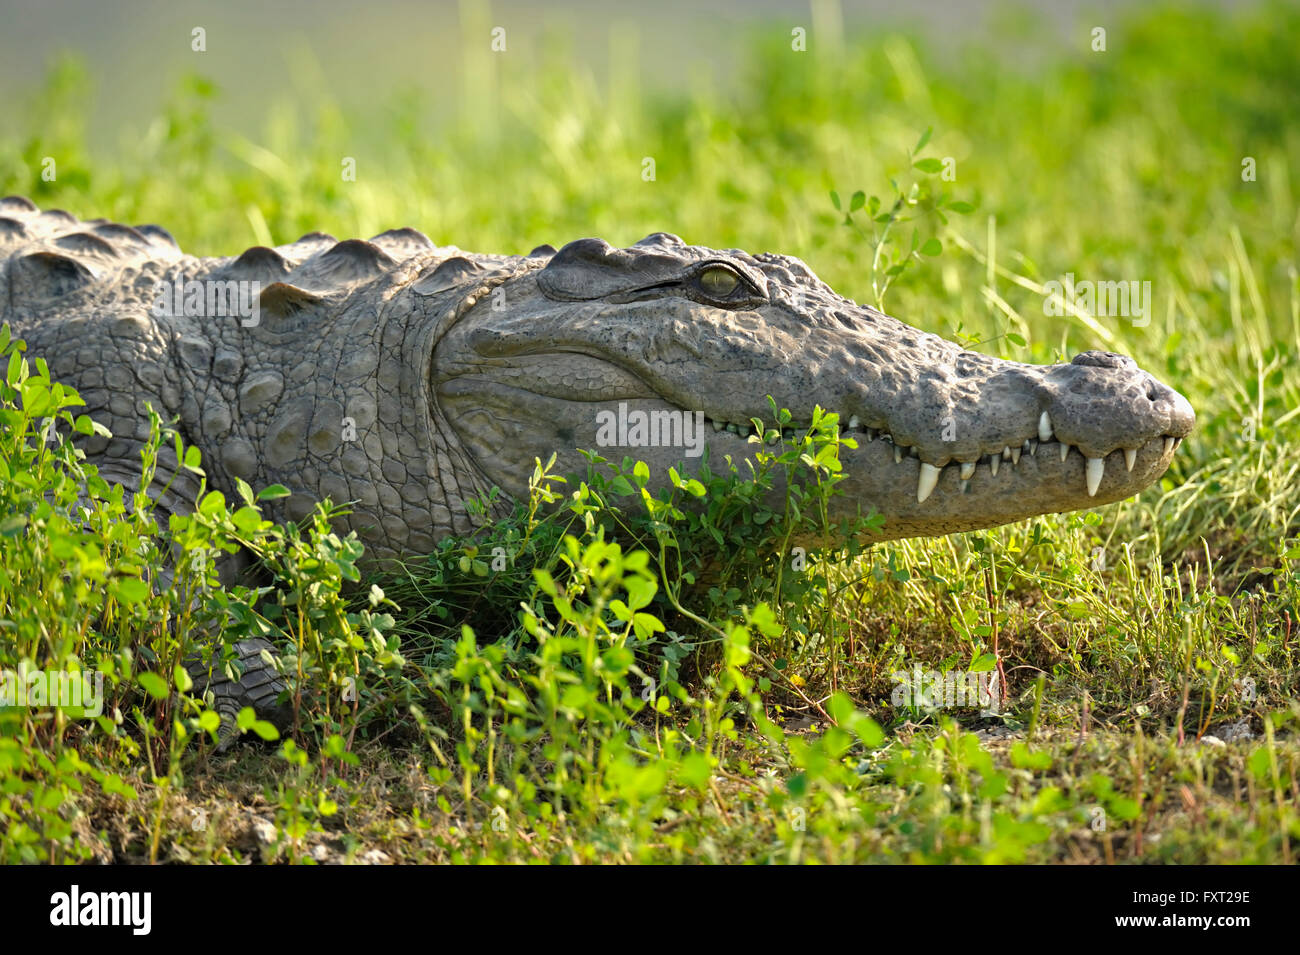 Mugger Crocodile Stock Photos and Images